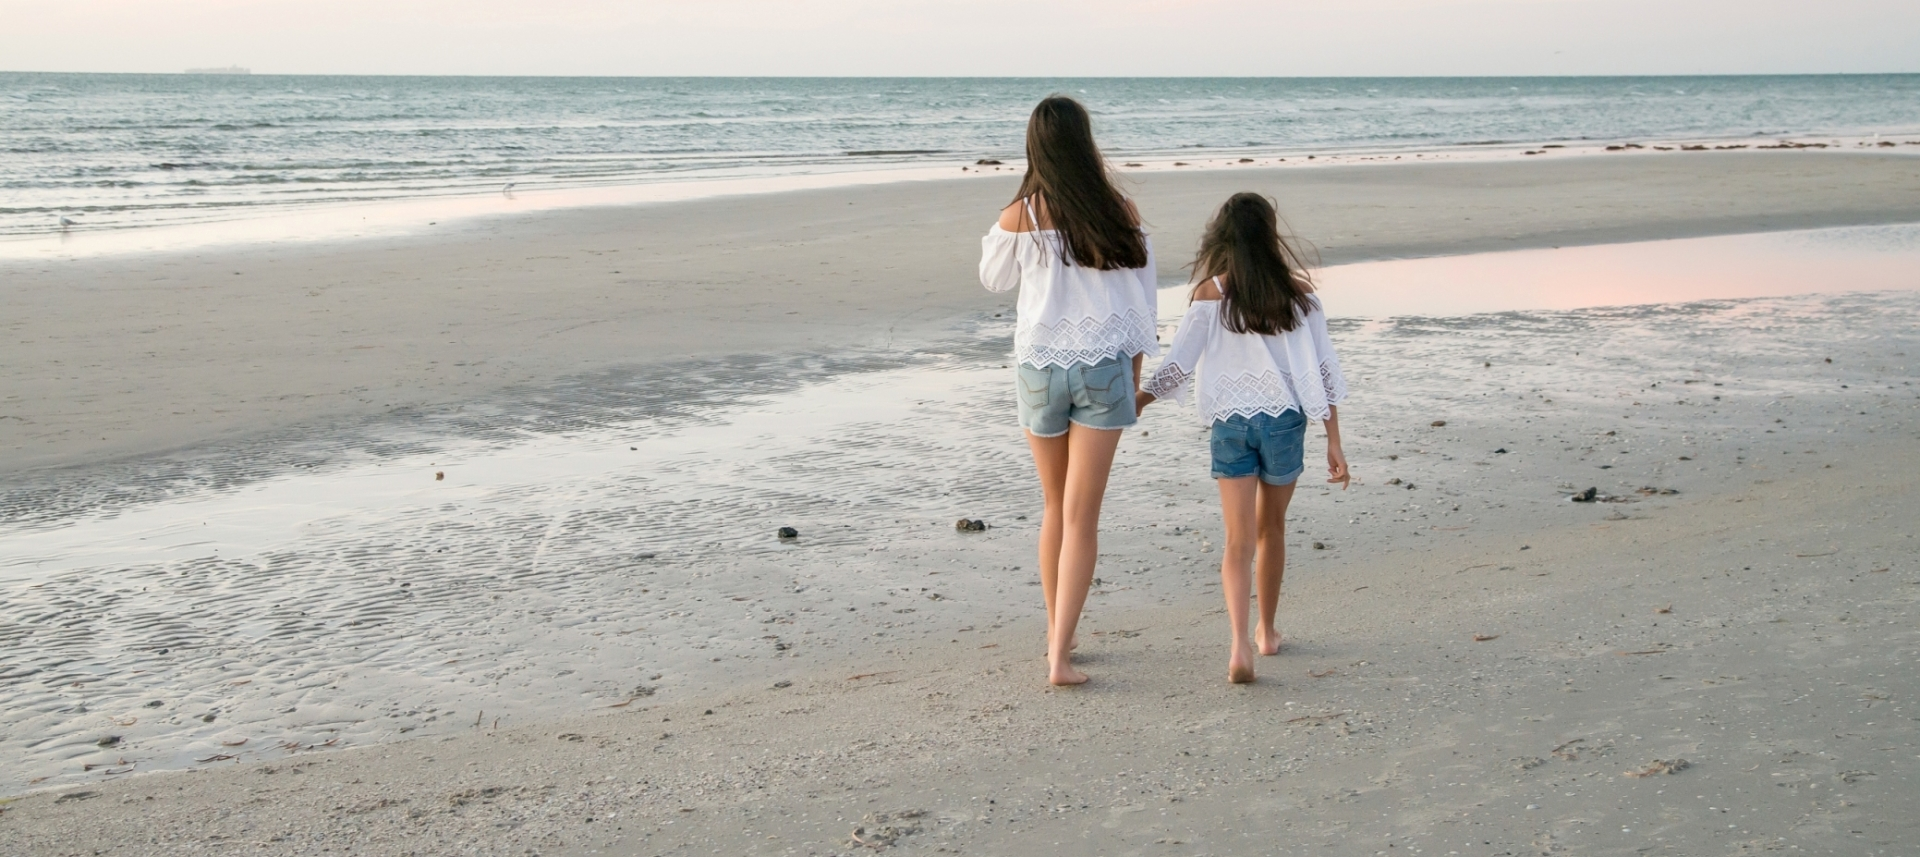 a photo of girls walking on a beach